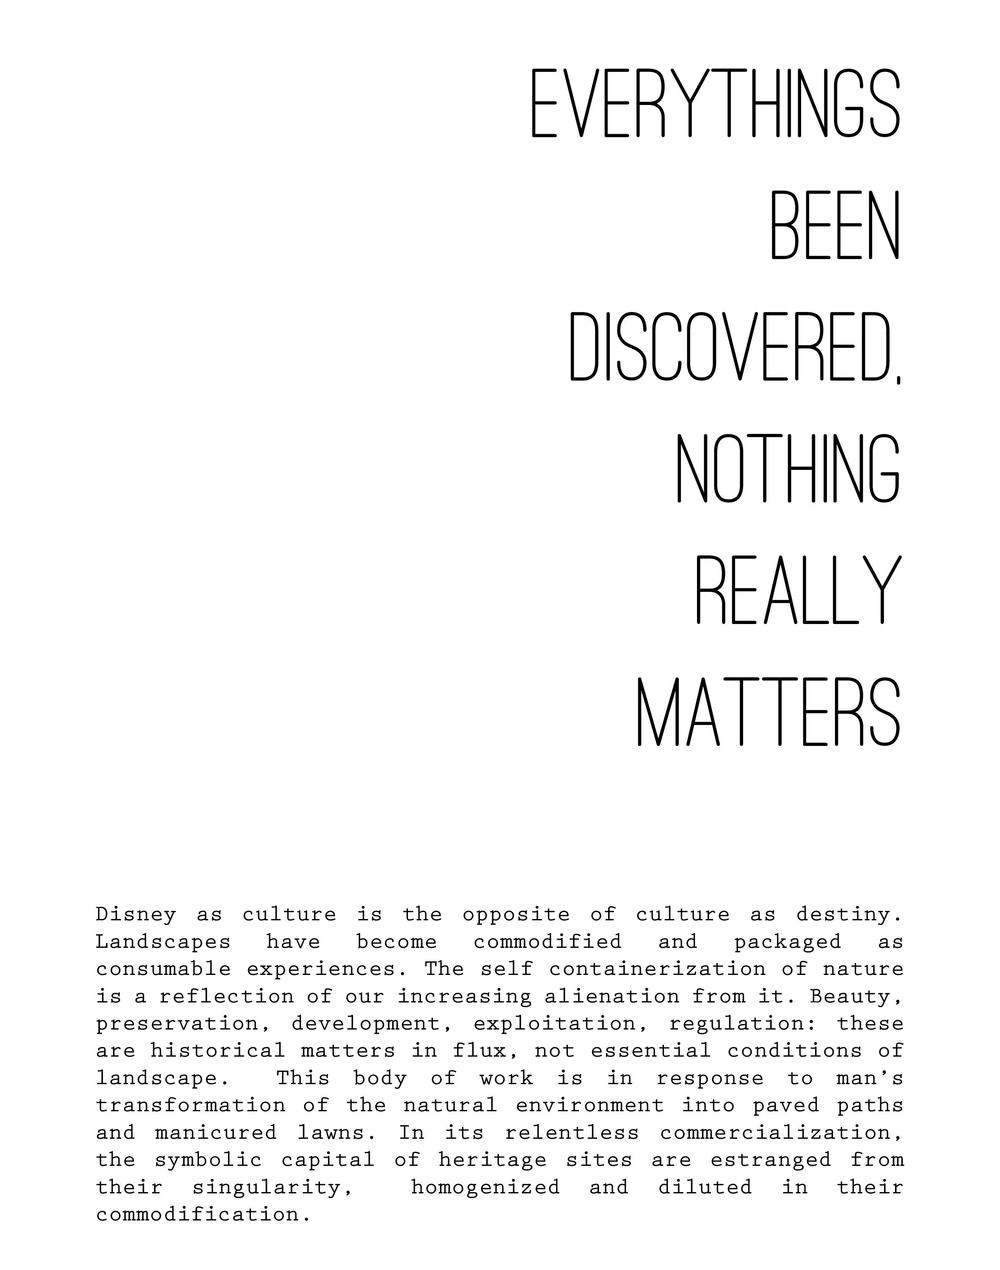 EverythingBeenDiscoveredNothingReallyMatters-Catalog-HEYDT-email-page-005.jpg